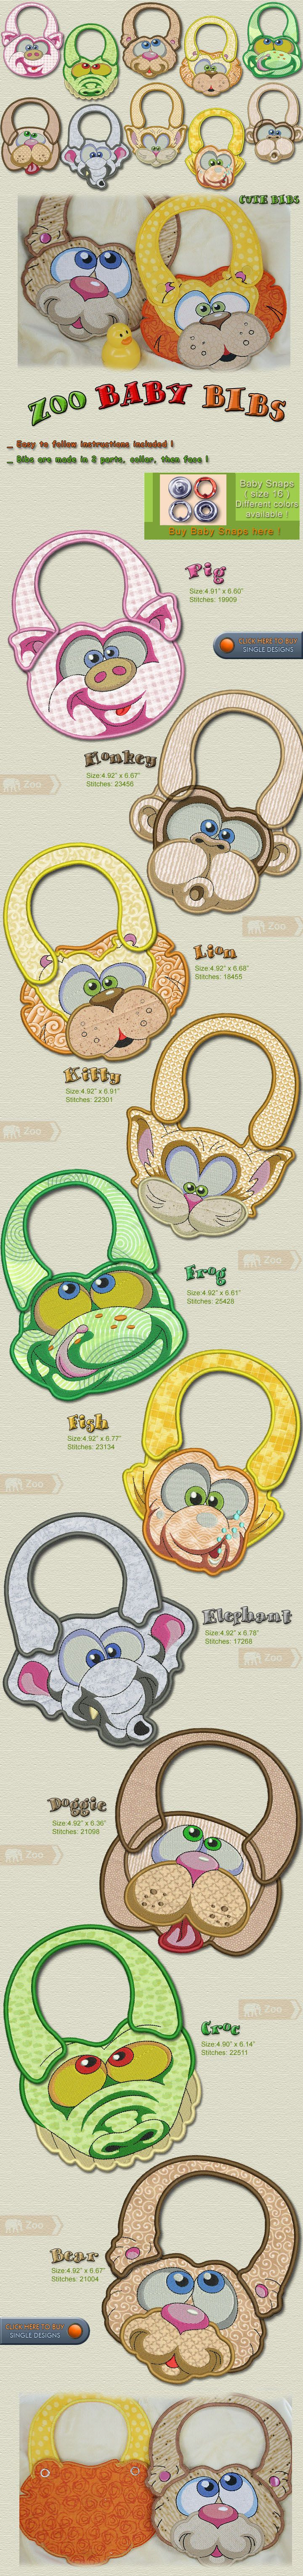 Zoo Baby Bibs Embroidery Designs